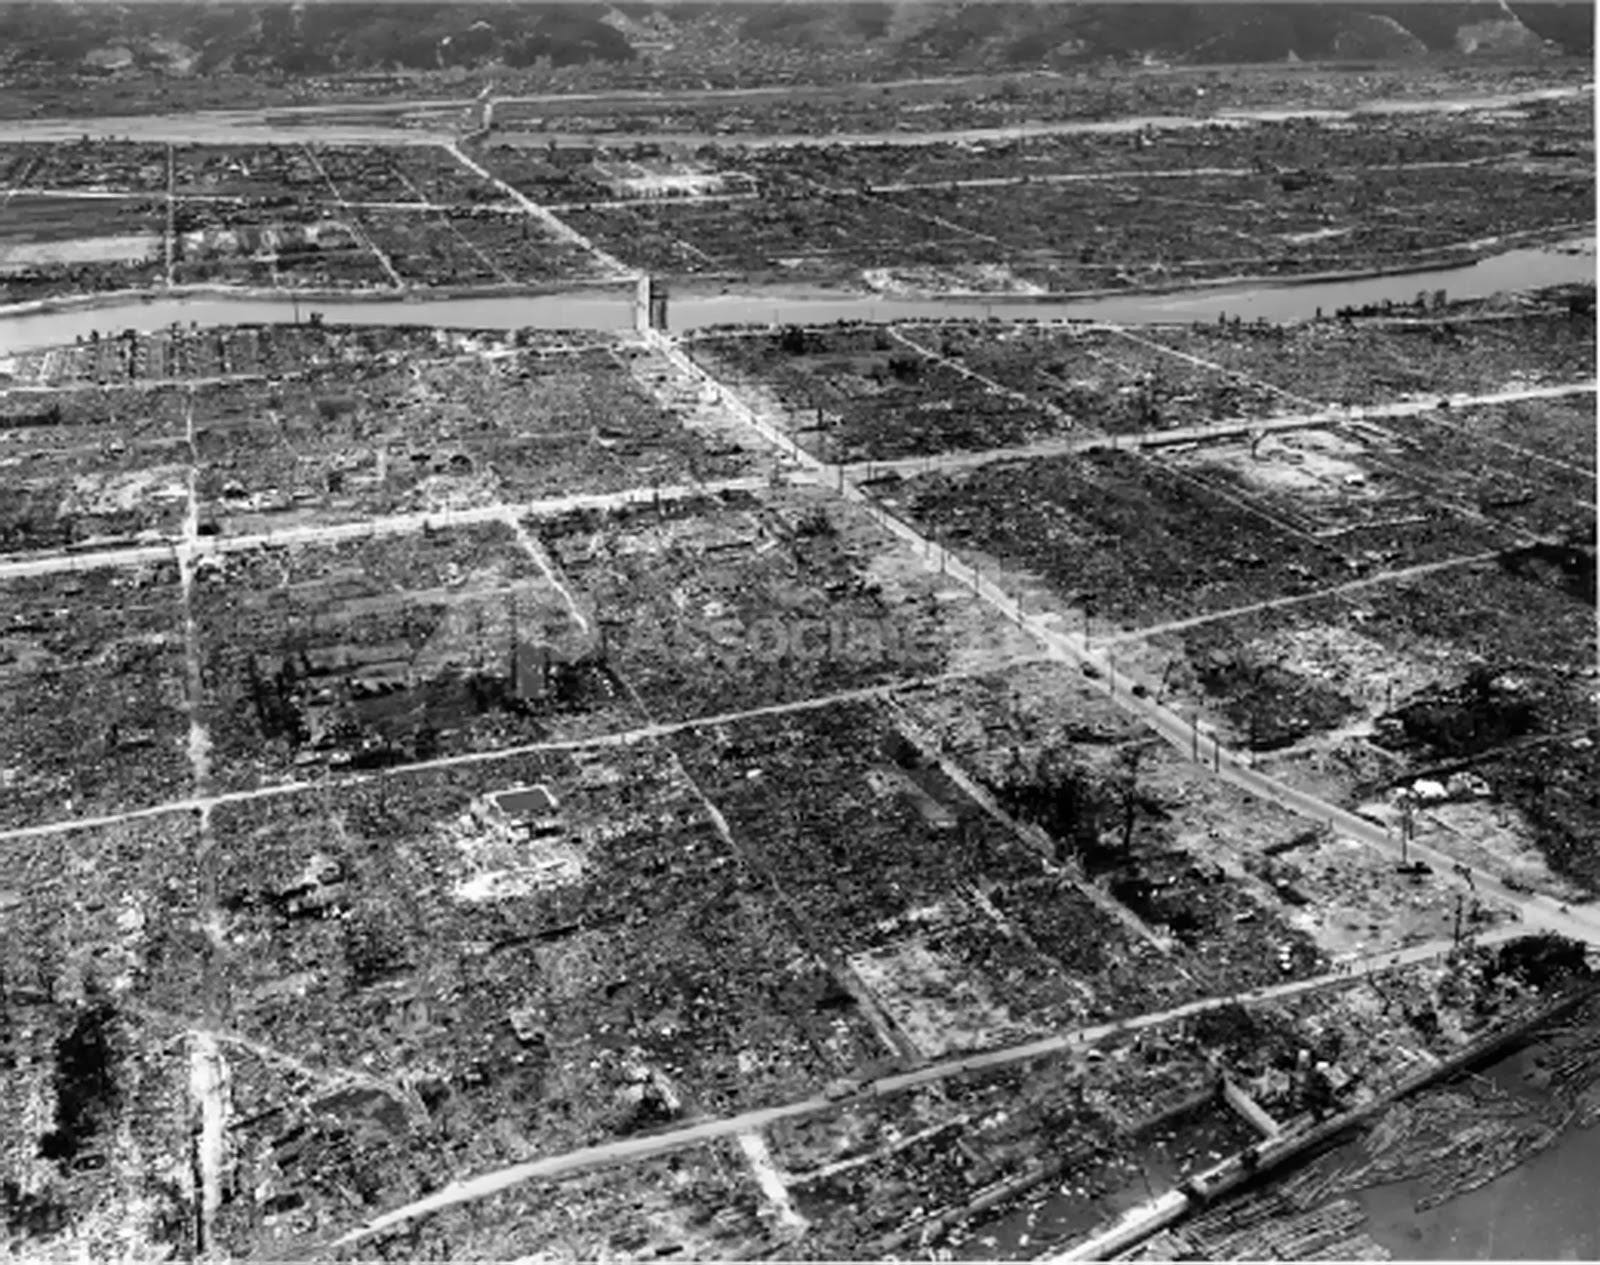 bombing date essay on hiroshima and nagasaki bombing agnesverfaillie com